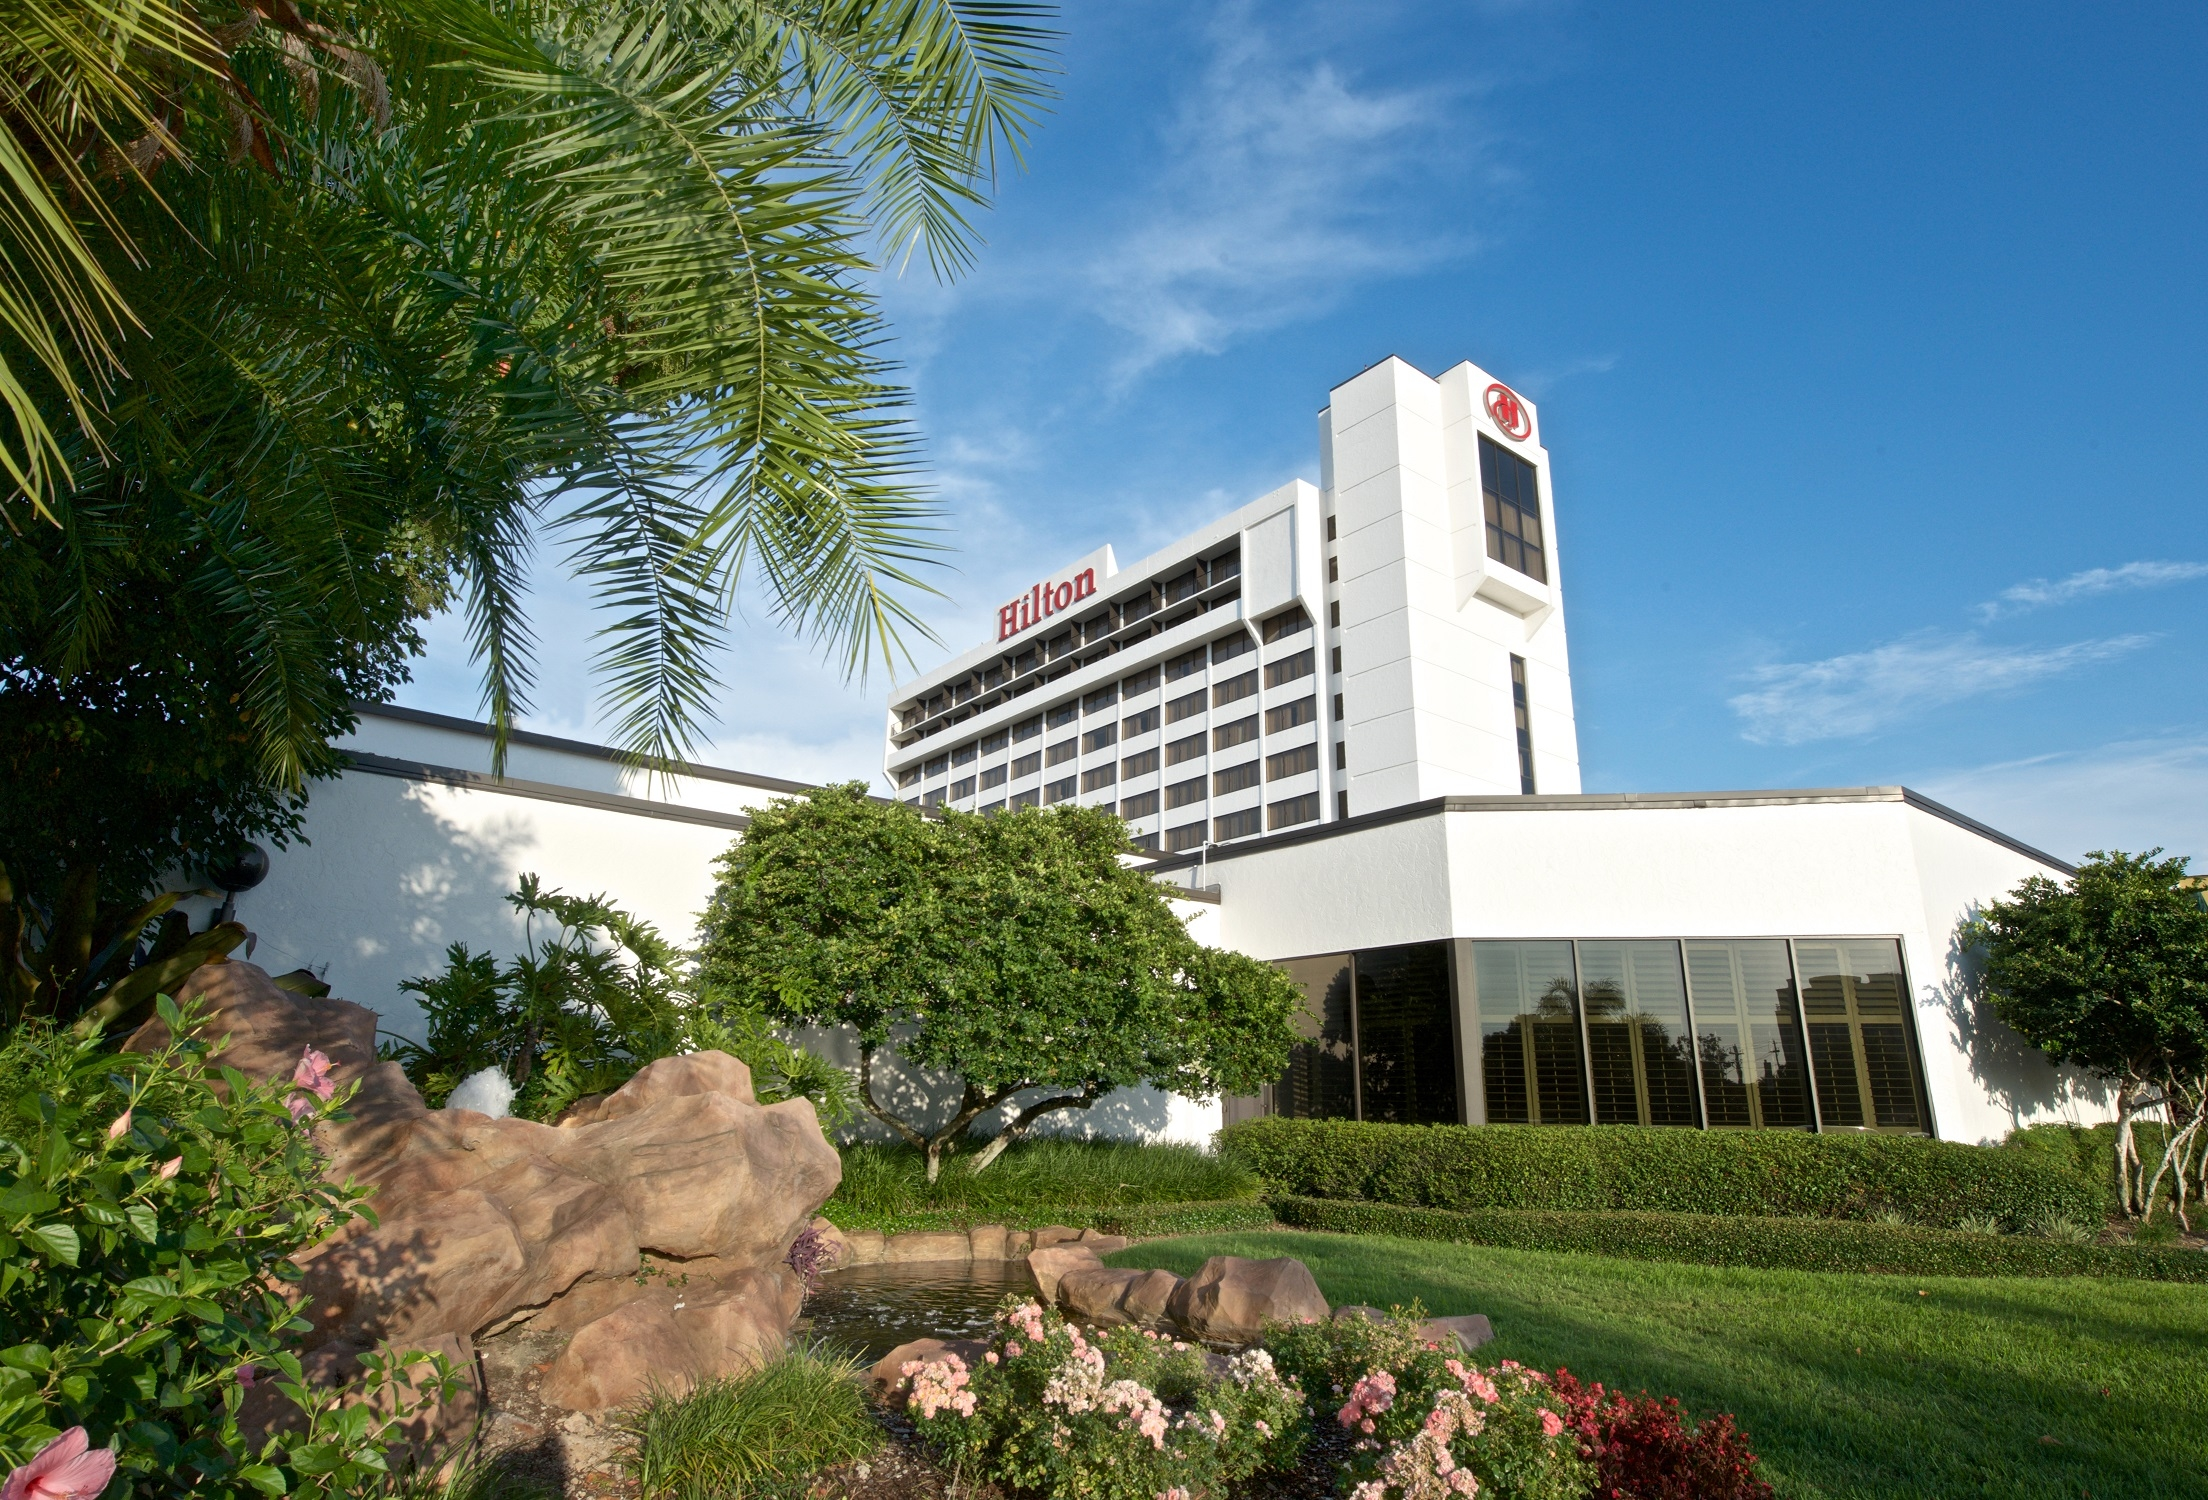 Rejuvenate with Pure Rooms at the Hilton Tampa Airport Westshore